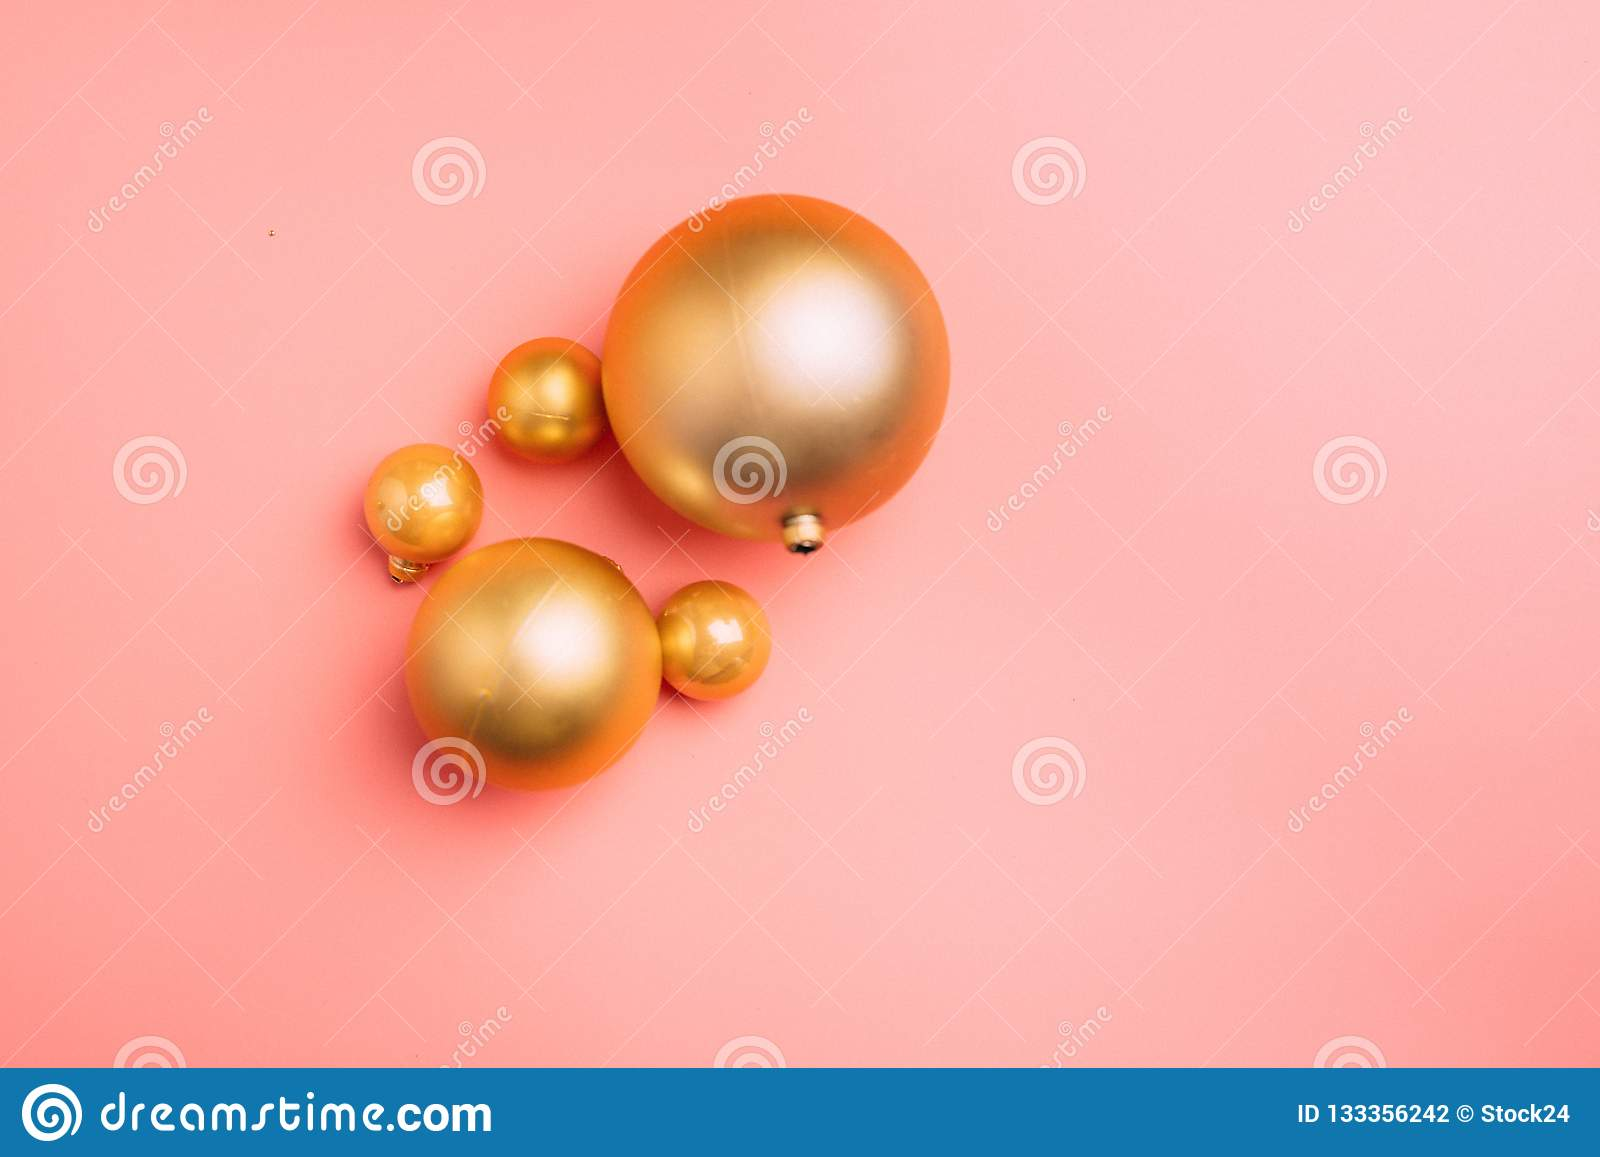 Gold and pink Christmas balls on wite background. Flat lay, top view copy space